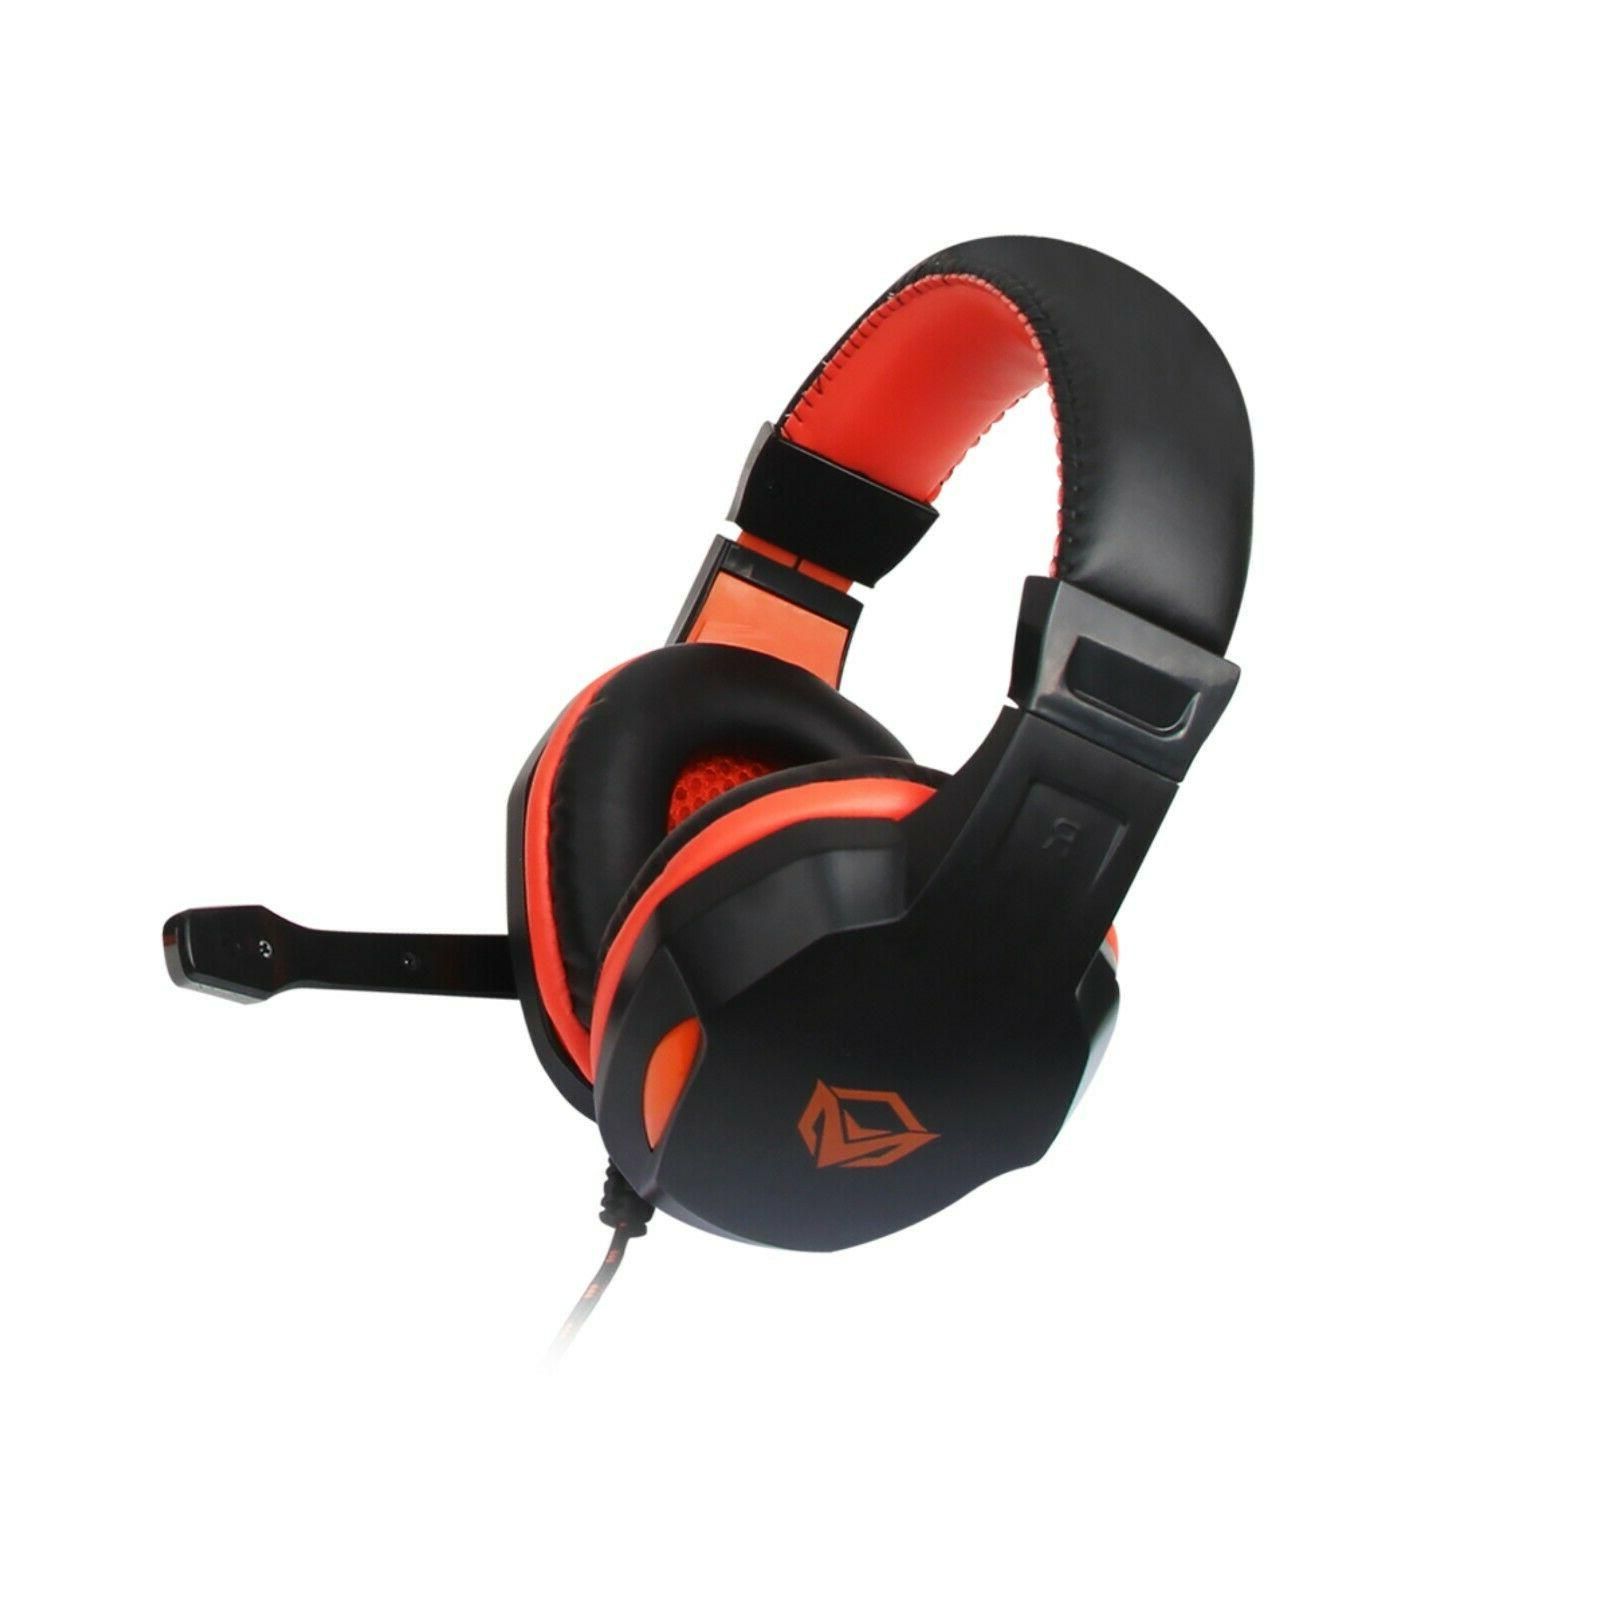 MeeTion Rainbow Gaming Mouse, Headset 4 1 Set